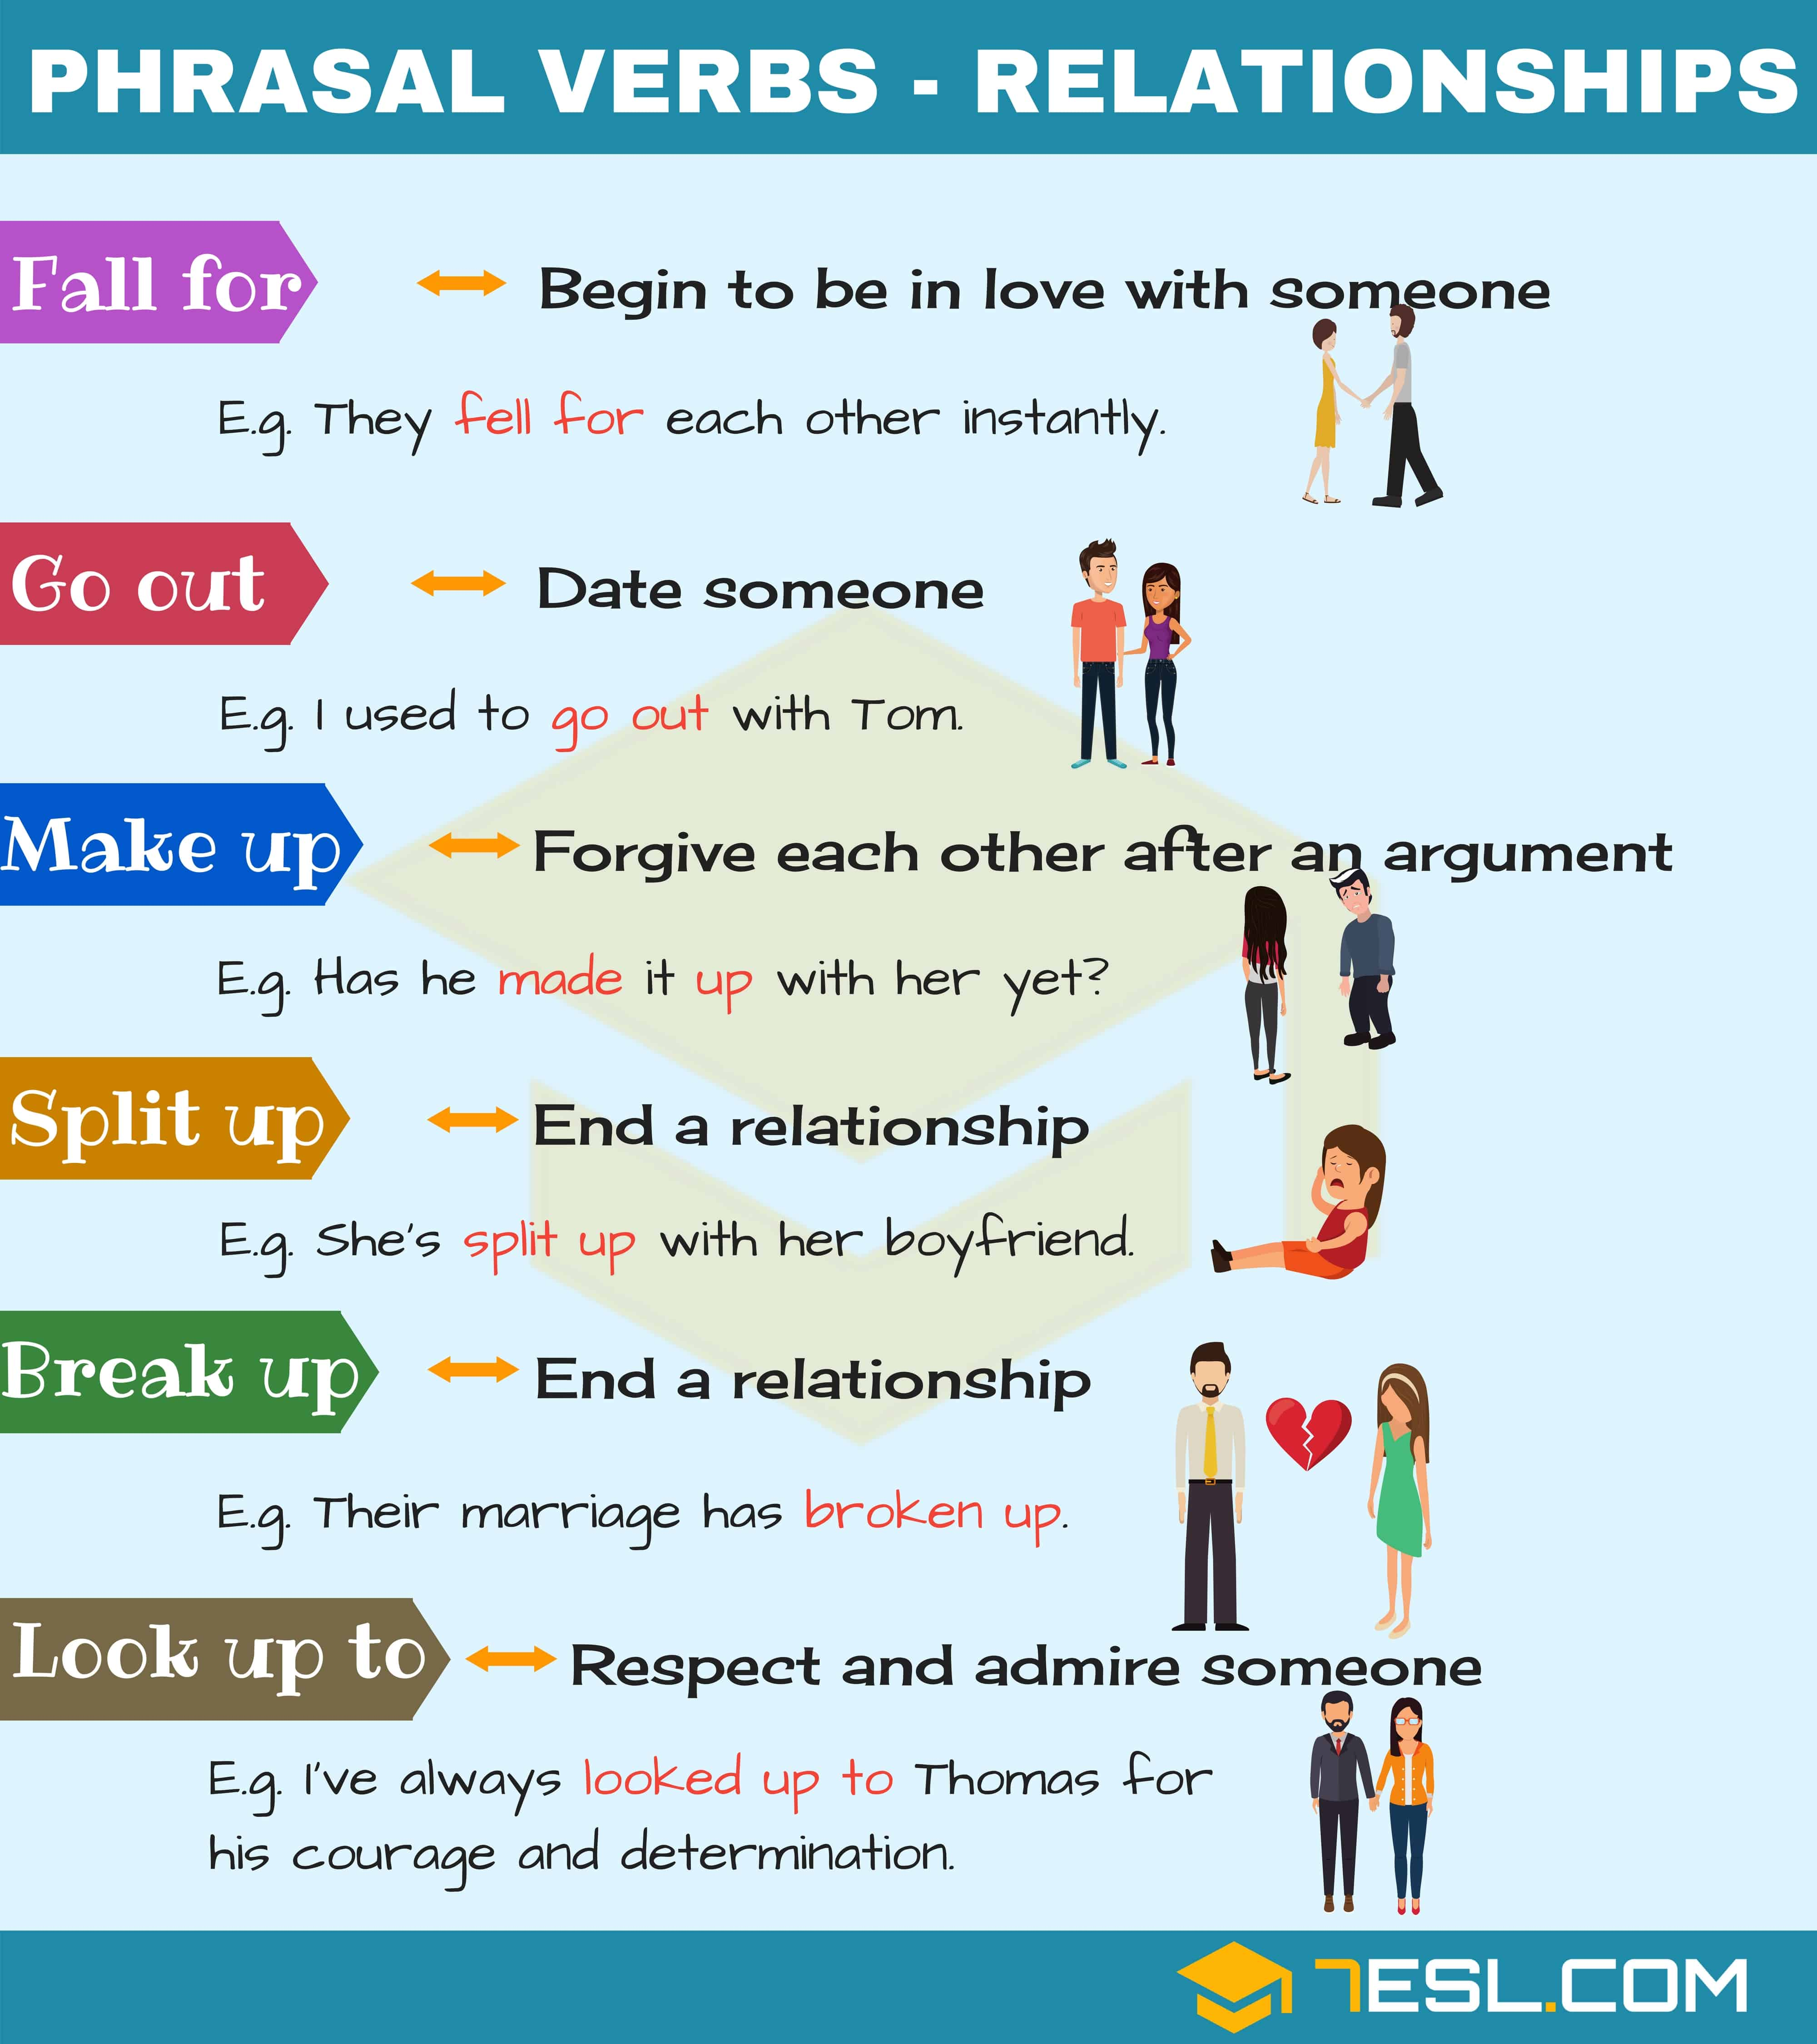 Phrasal Verbs about Relationships